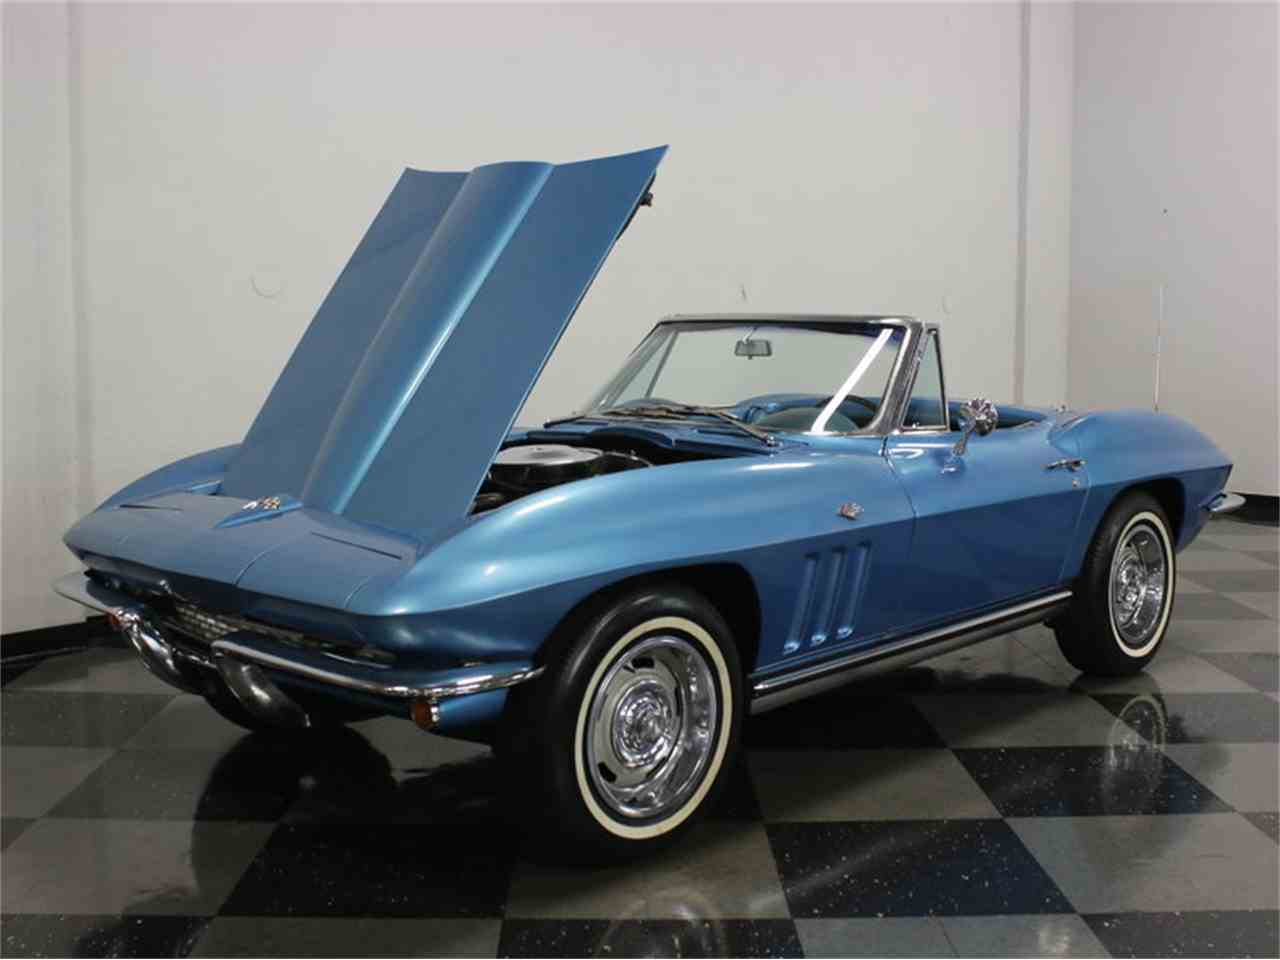 Large Picture of 1965 Corvette located in Texas - $47,995.00 Offered by Streetside Classics - Dallas / Fort Worth - JRNP